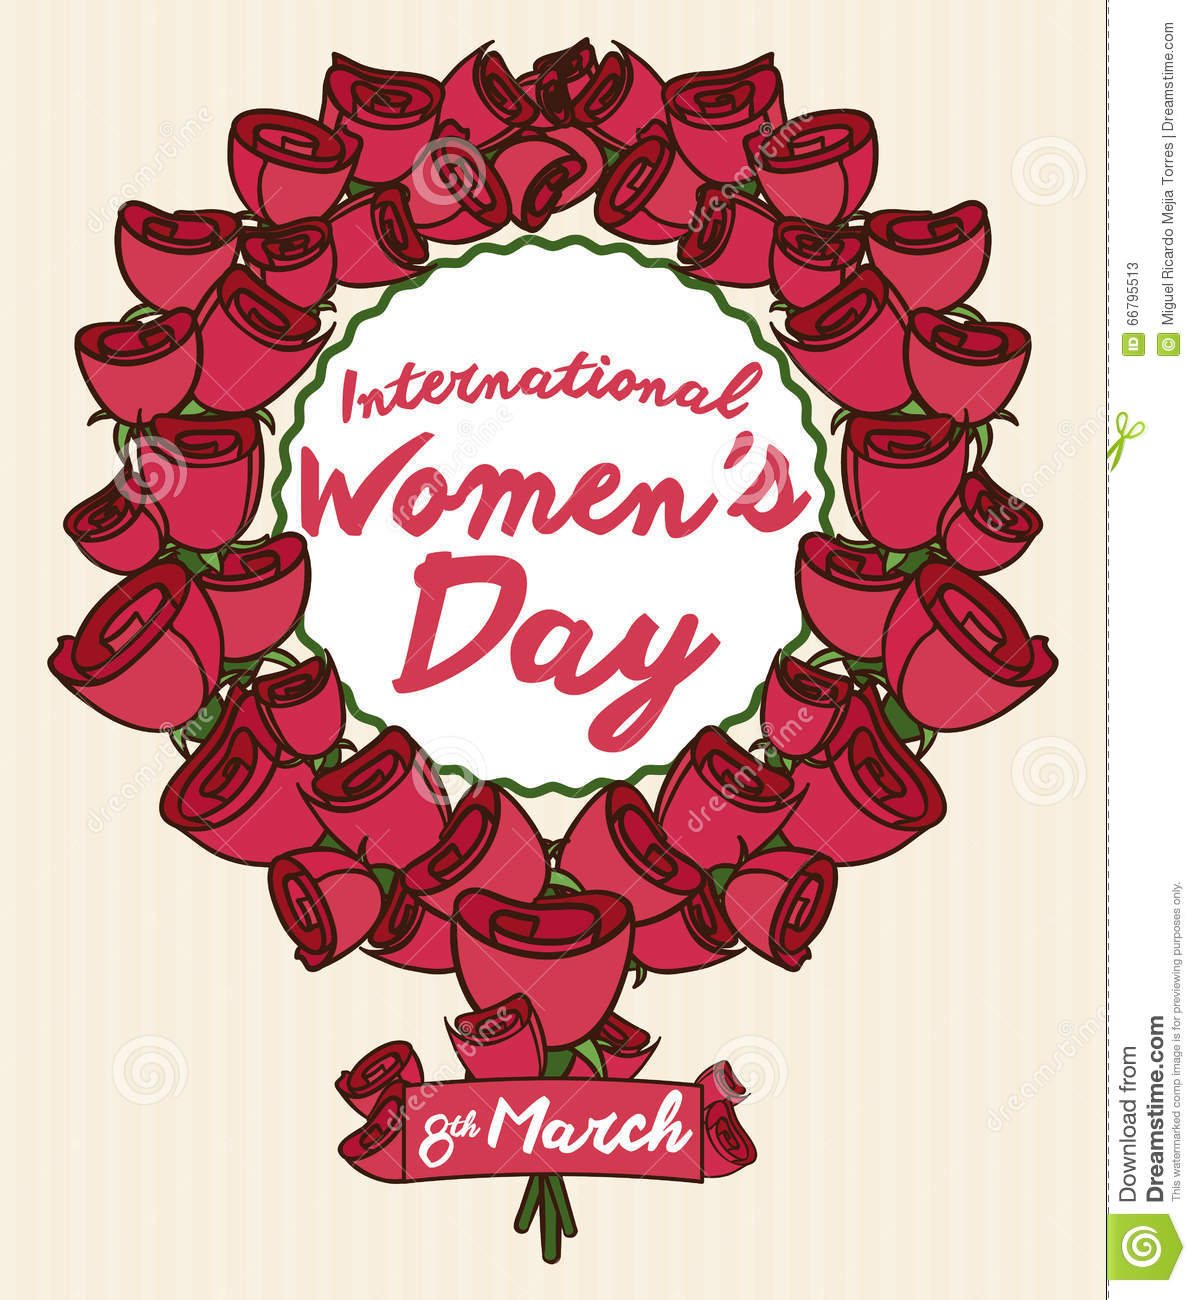 Roses and a ribbon forming womens symbol for womens day vector roses and a ribbon forming women s symbol for women s day vector illustration biocorpaavc Gallery